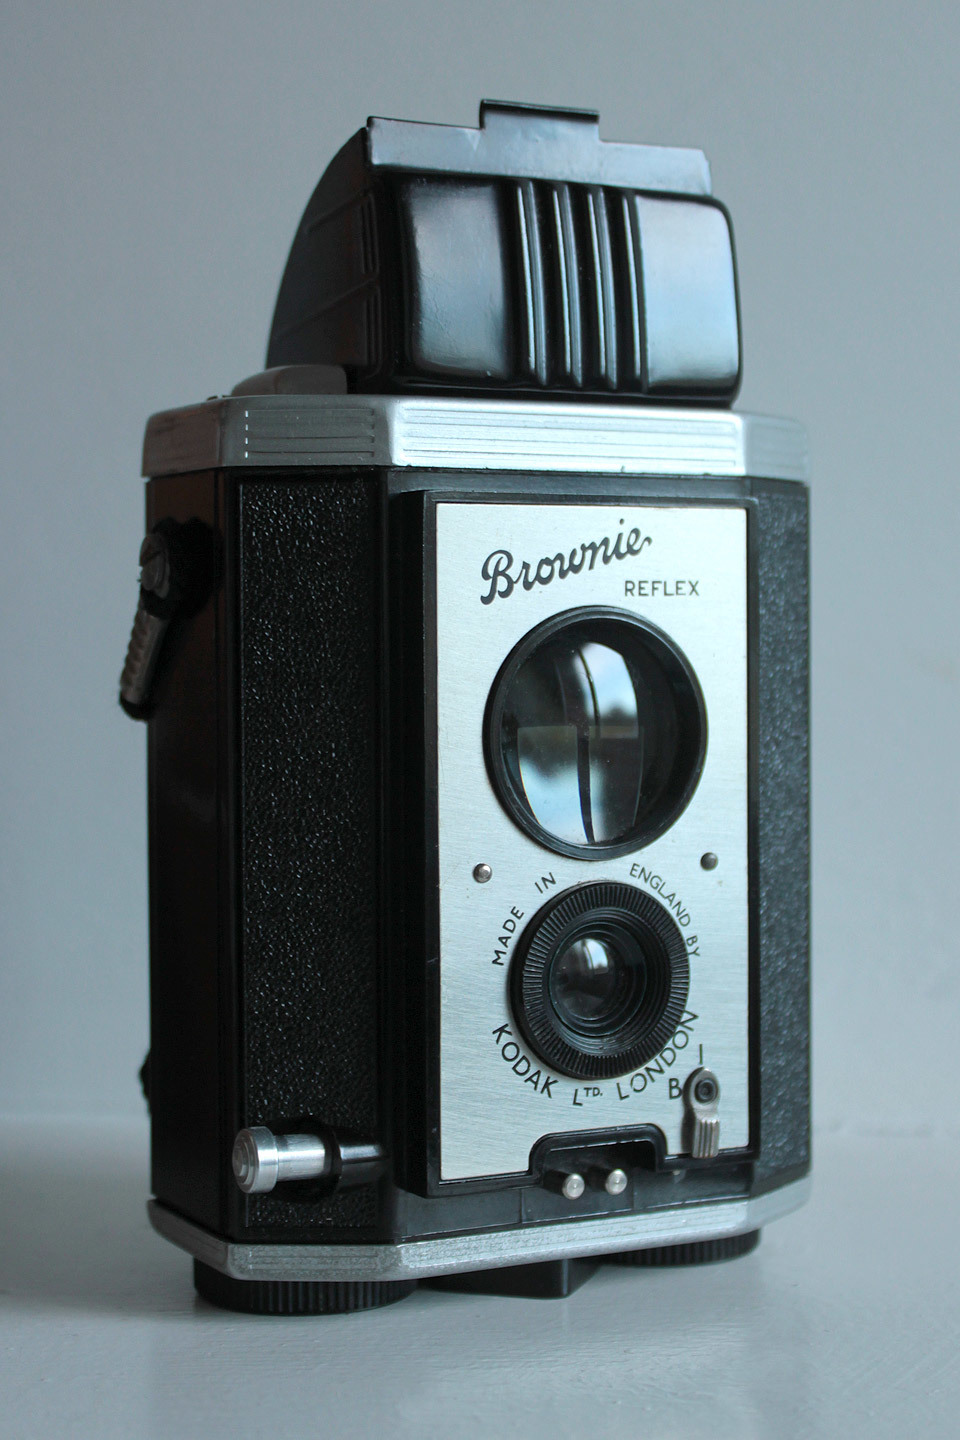 Kodak Brownie Reflex.